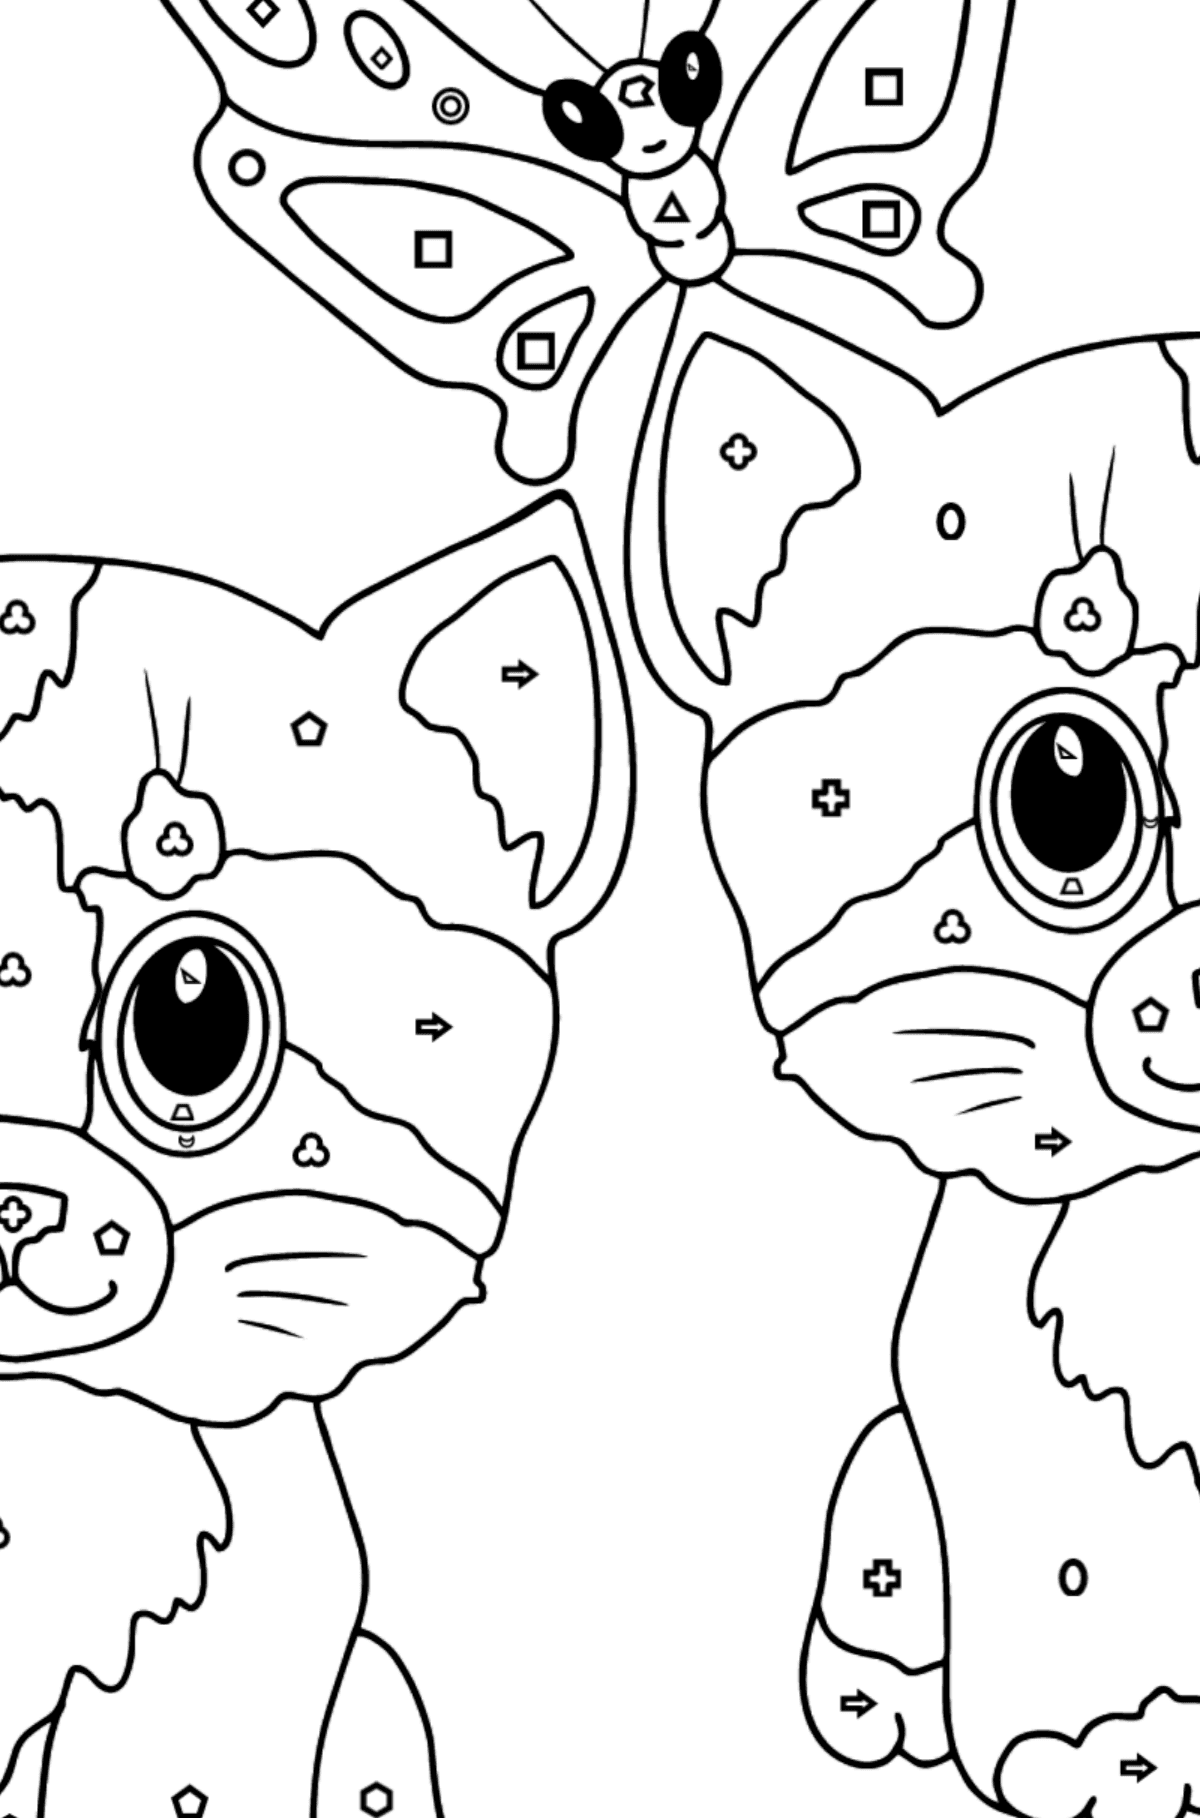 Coloring Page - Kittens are Playing Happily with a Butterfly  - Coloring by Geometric Shapes for Kids